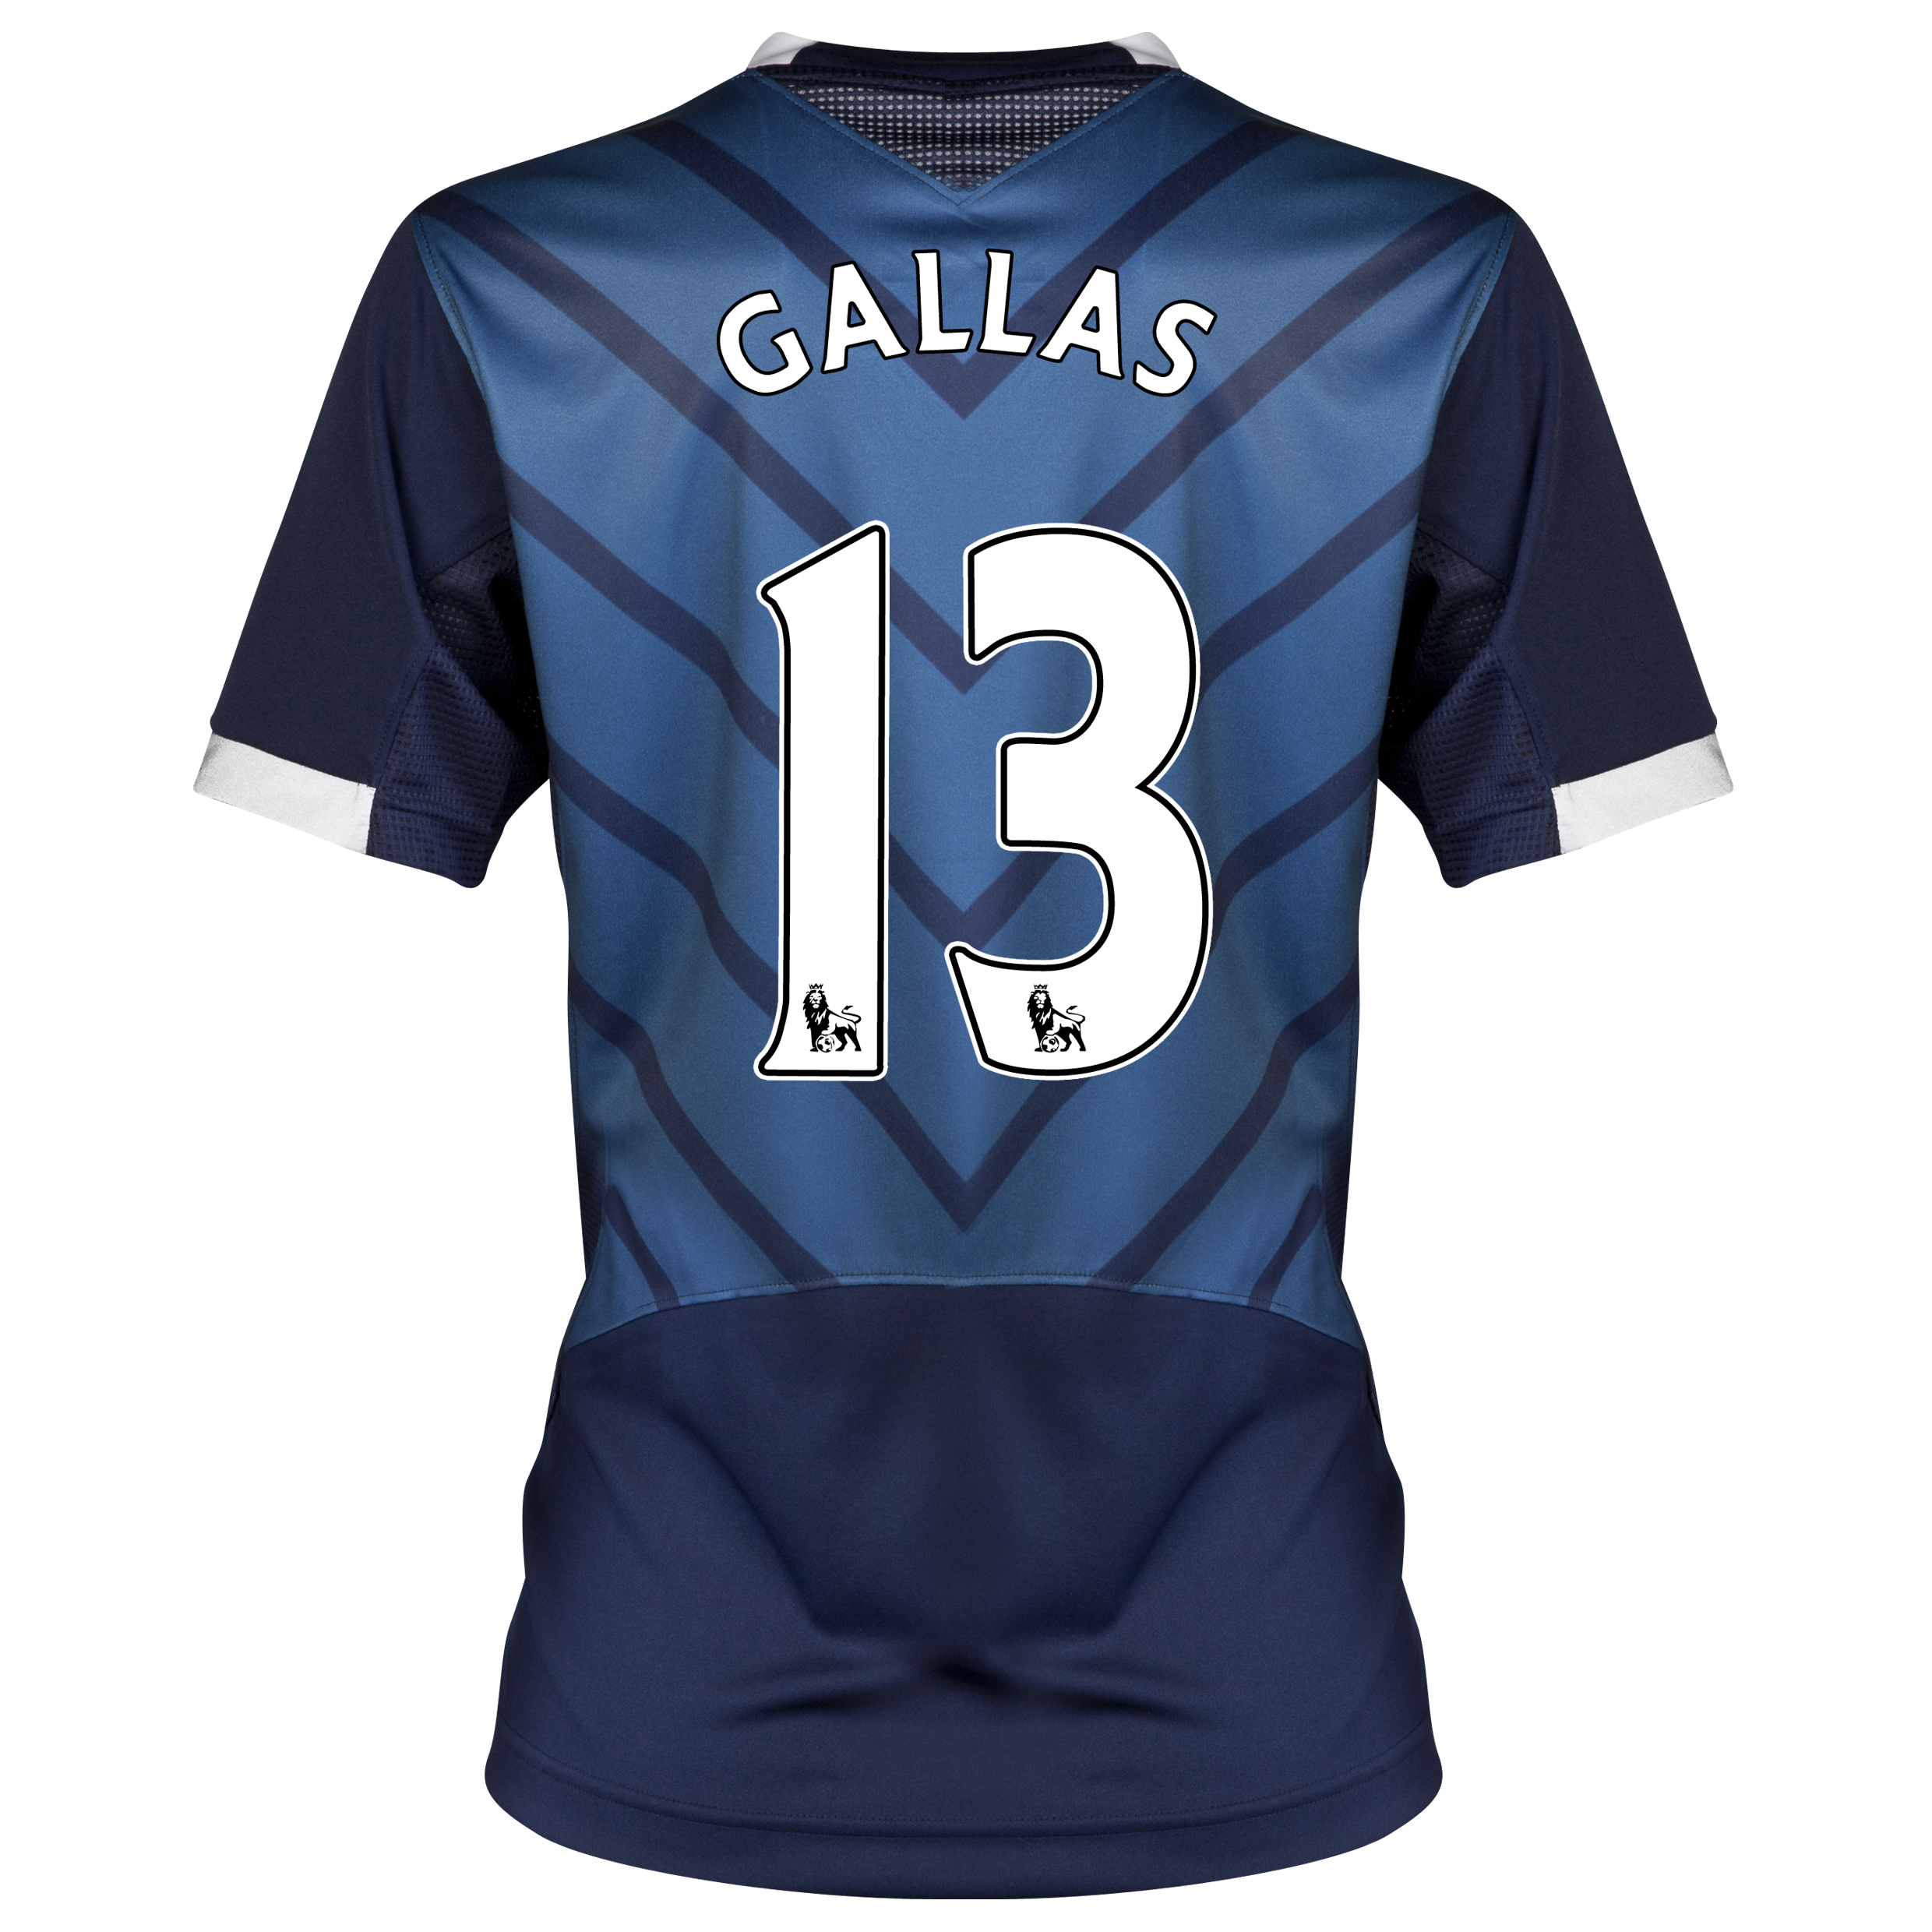 Tottenham Hotspur Away Shirt 2012/13 - Womens with Gallas 13 printing